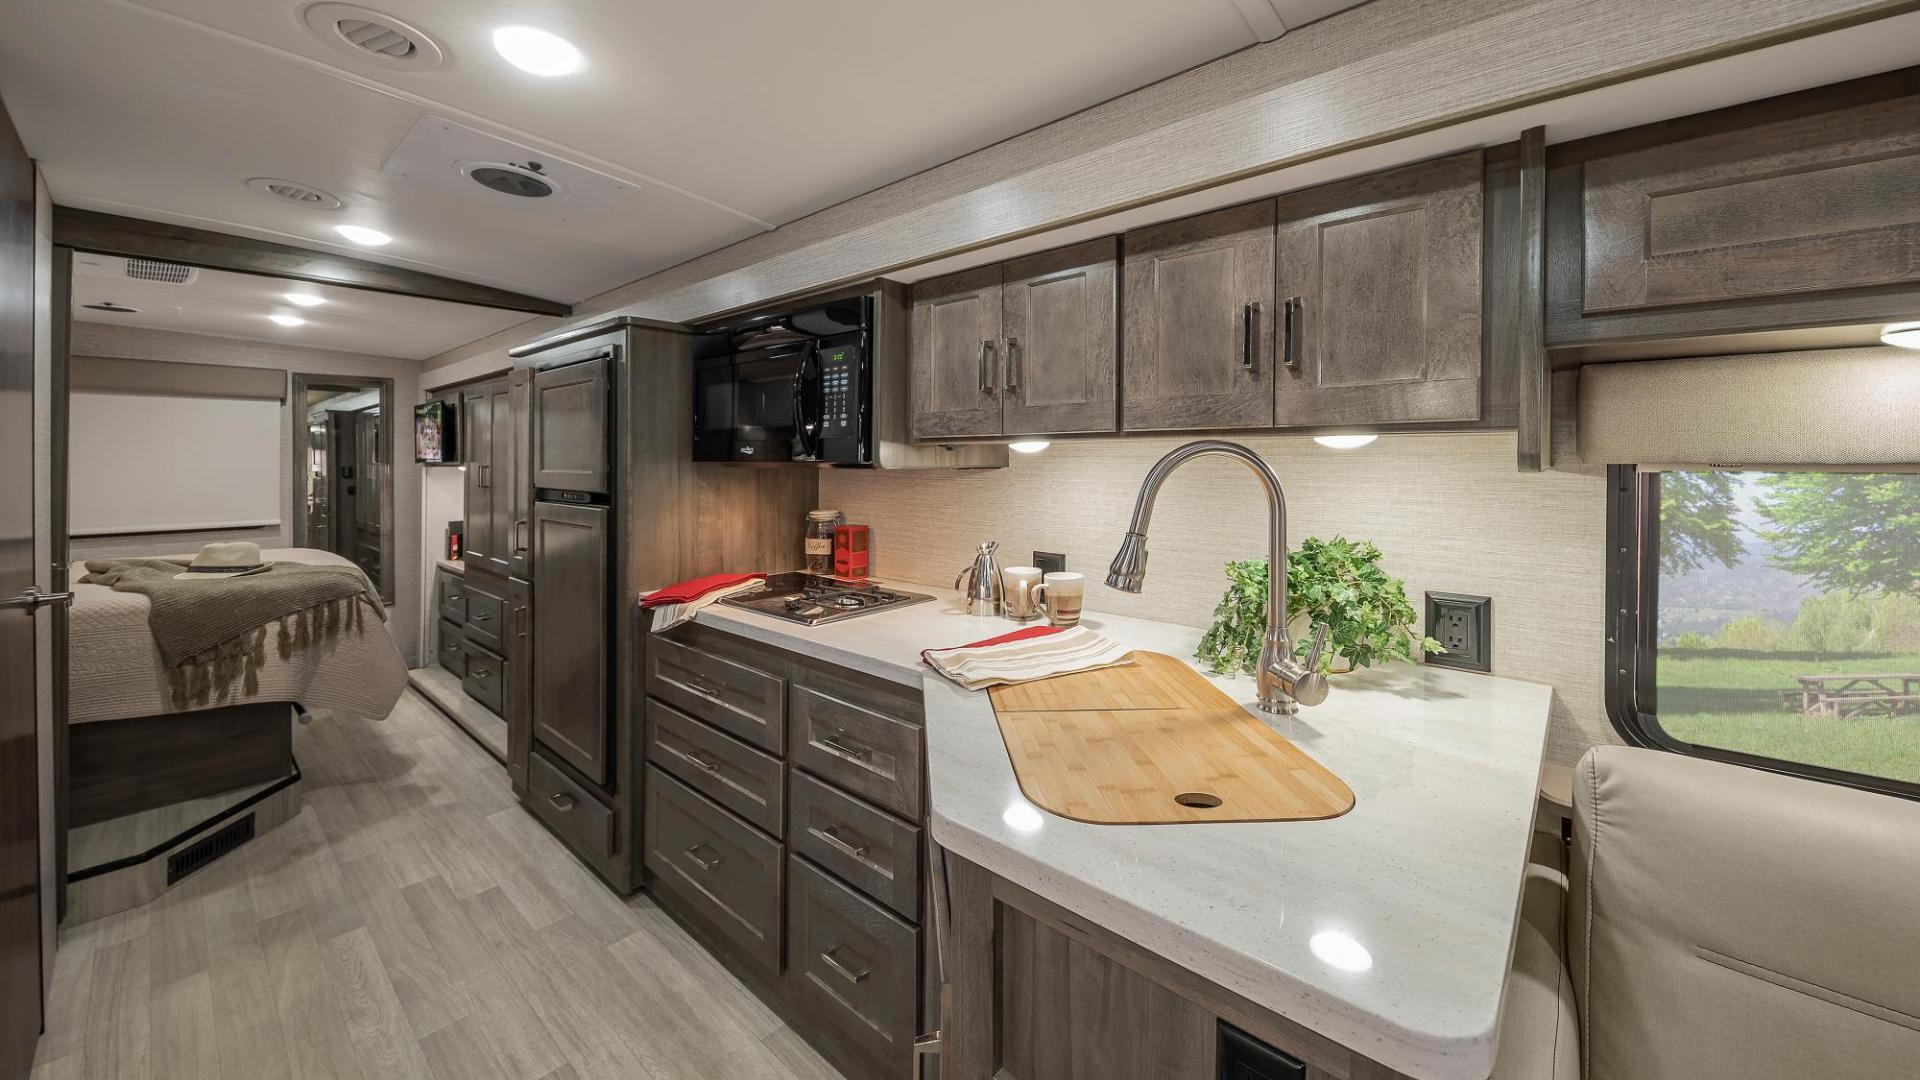 Full view of the Winnebago Adventurer Galley. Includes cabinetry, ample counterspace, and large sink.